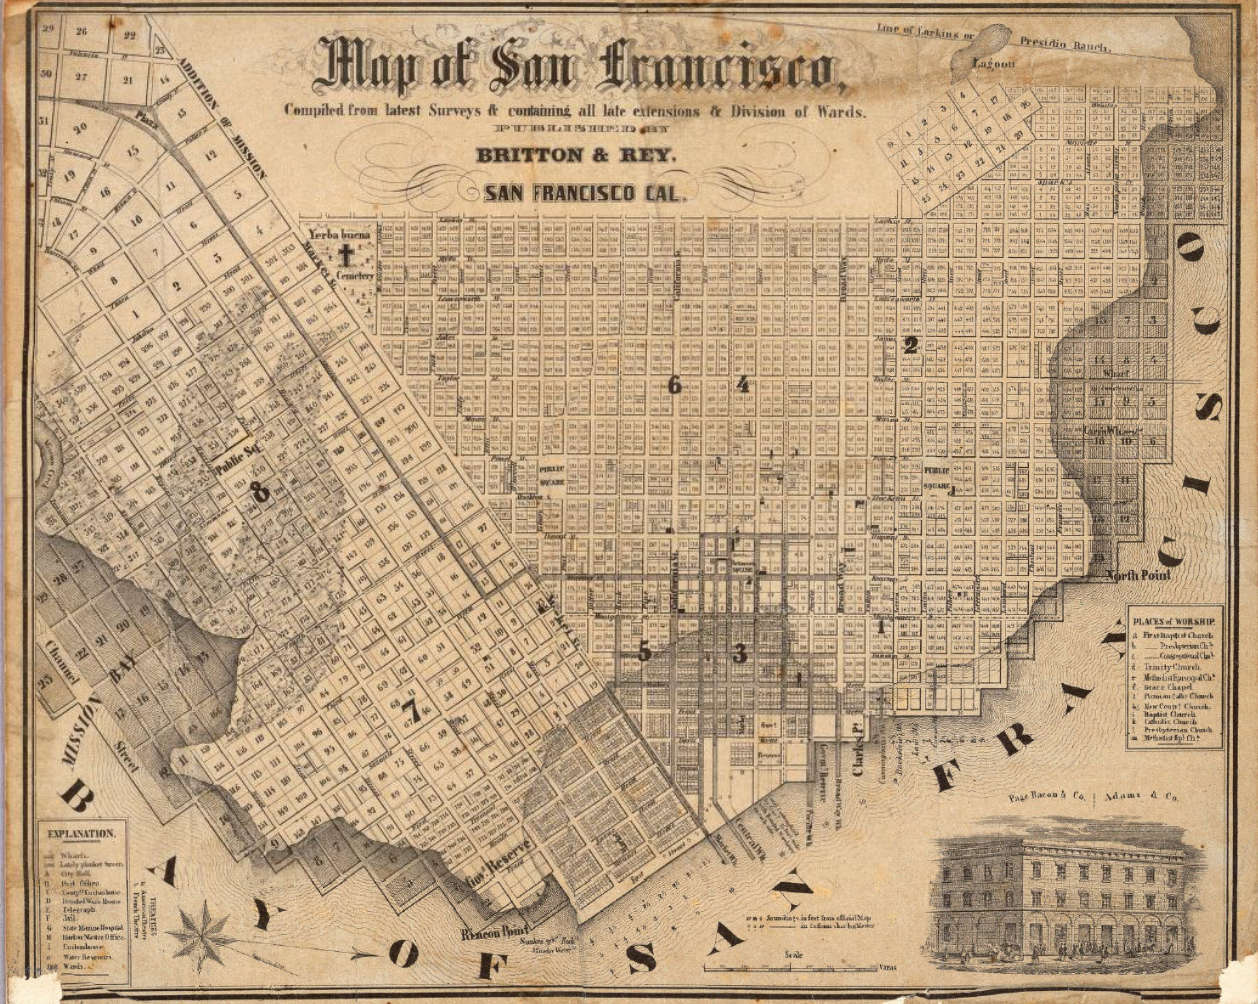 san Francisco 1852 Britton & Rey 1:18,100